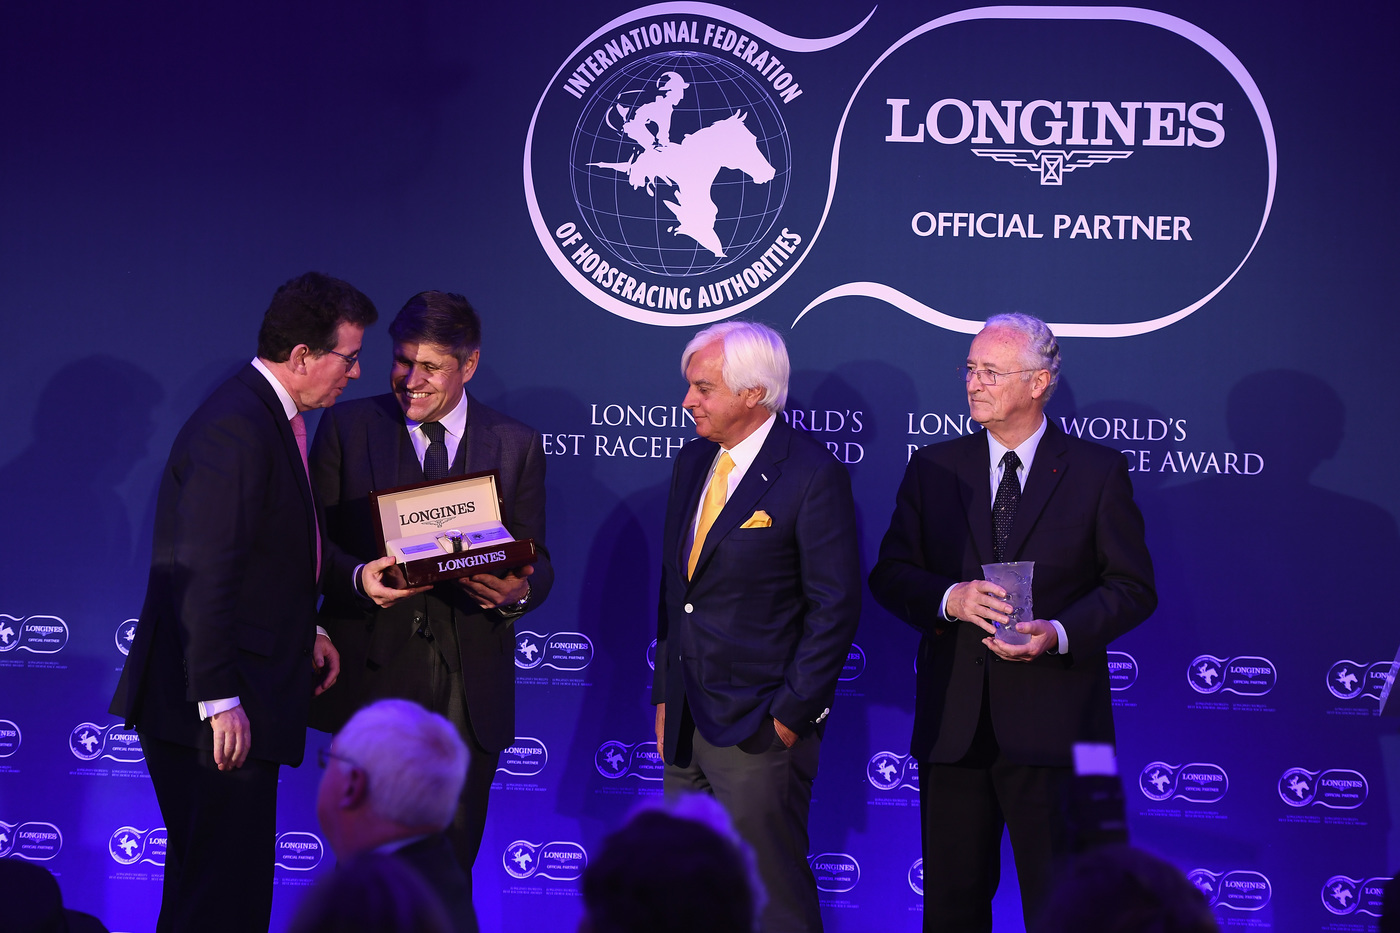 Longines Flat Racing Event: Arrogate crowned the Longines World's Best Racehorse for the second year in a row, Qatar Prix de l'Arc de Triomphe named Longines World's Best Horse Race for the second time 13